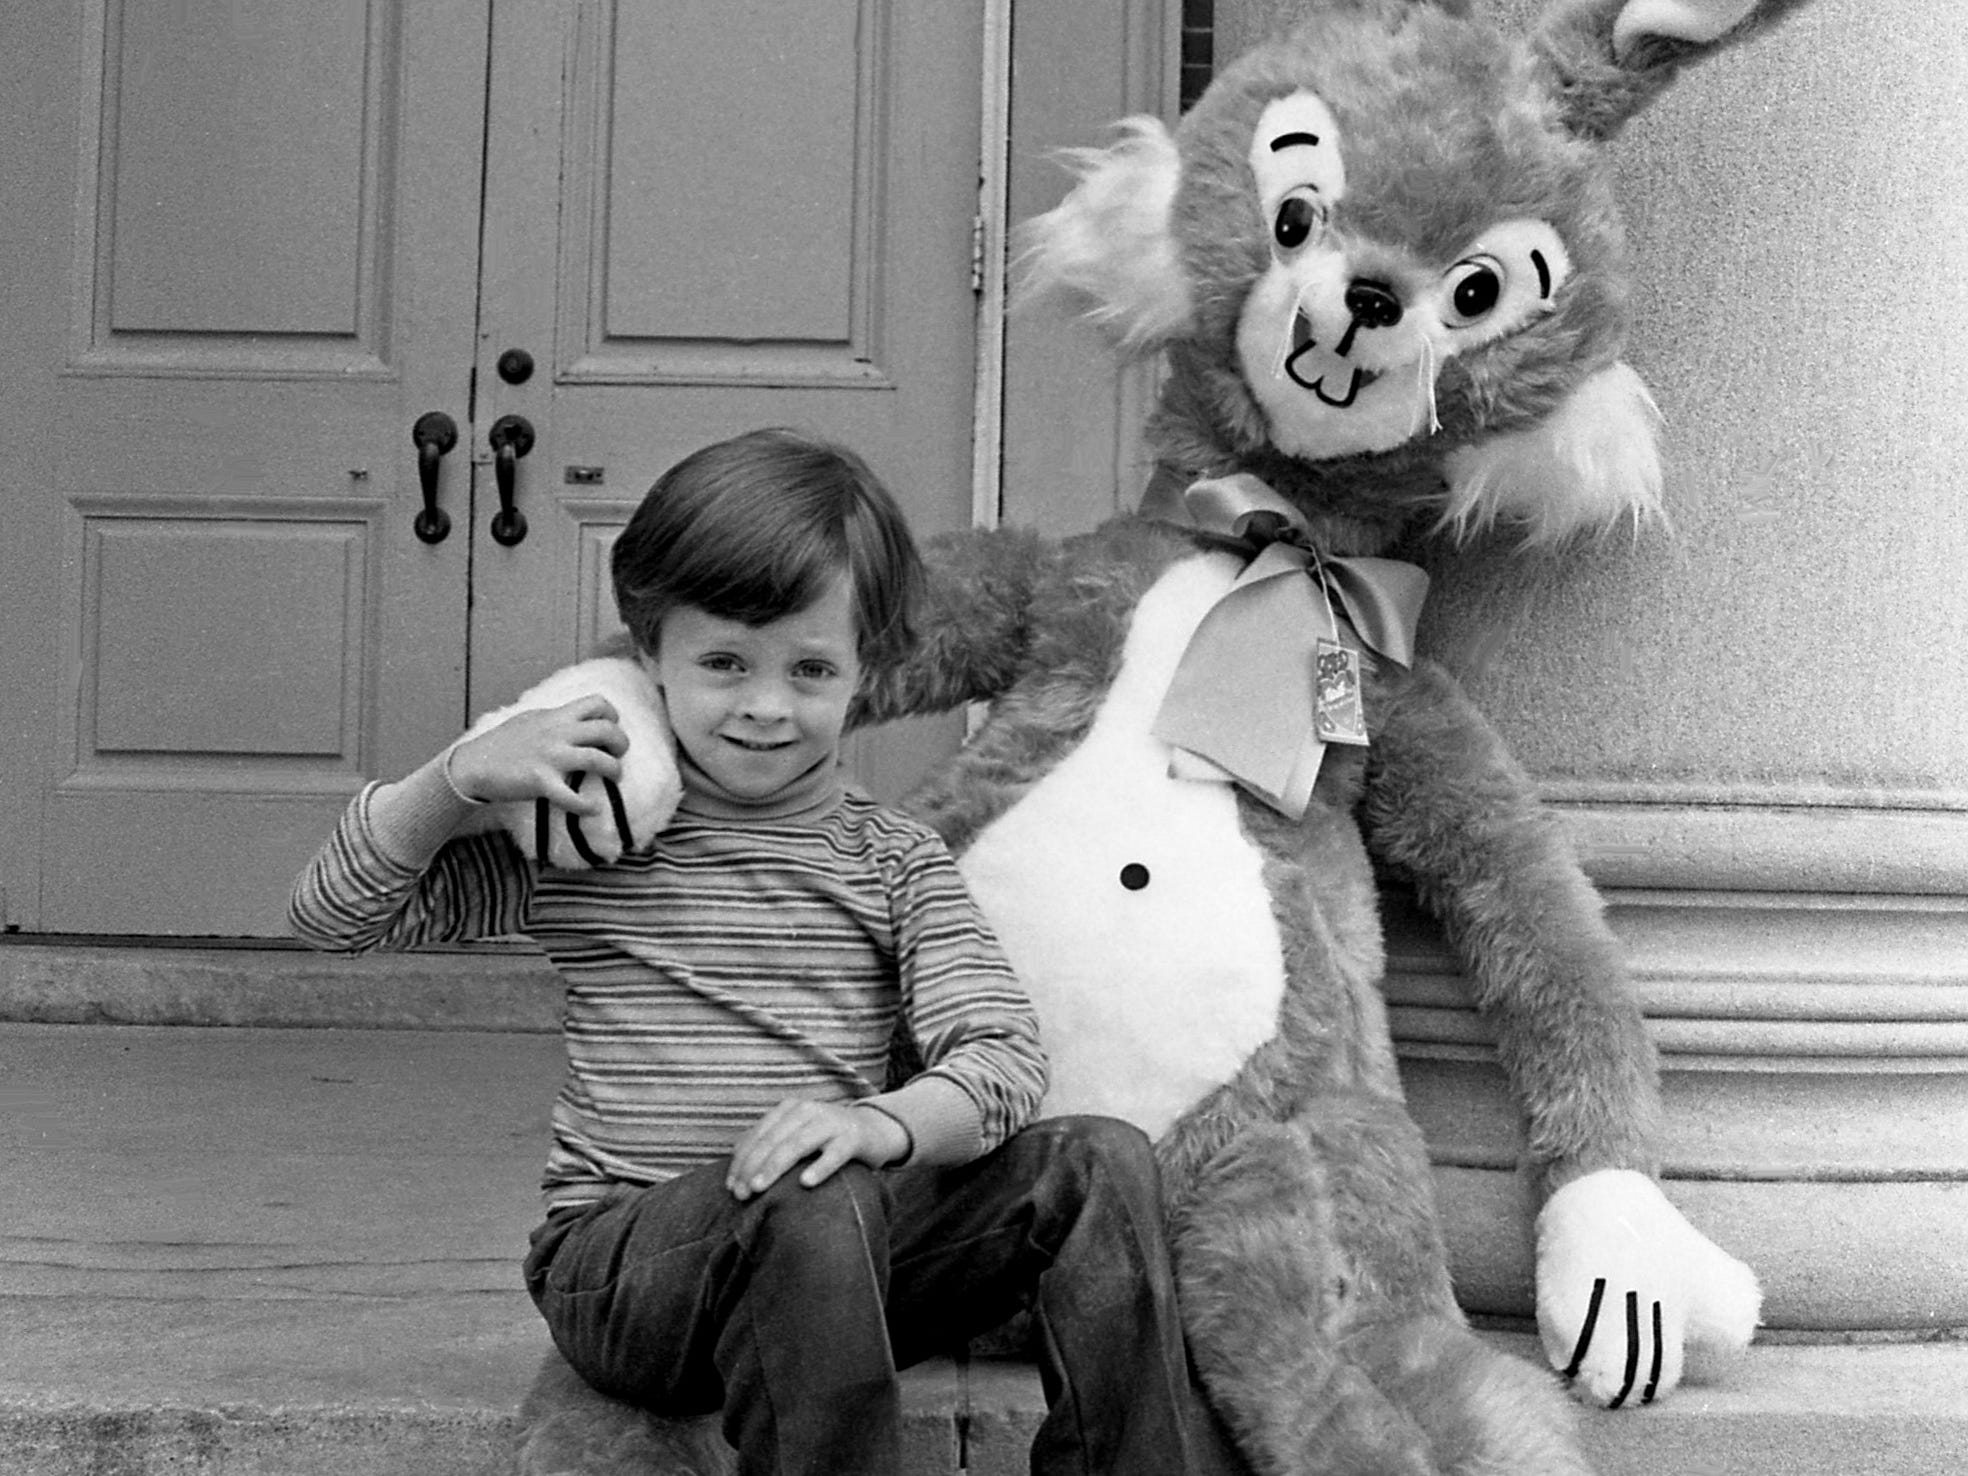 Richard Nord, 5, son of Charles D. Nord, is hanging out with a 6-foot-tall stuffed rabbit in front of the University School of Nashville in April 10, 1979. The stuffed rabbit will be one of the prizes in the country fair at the school on April 26-27.